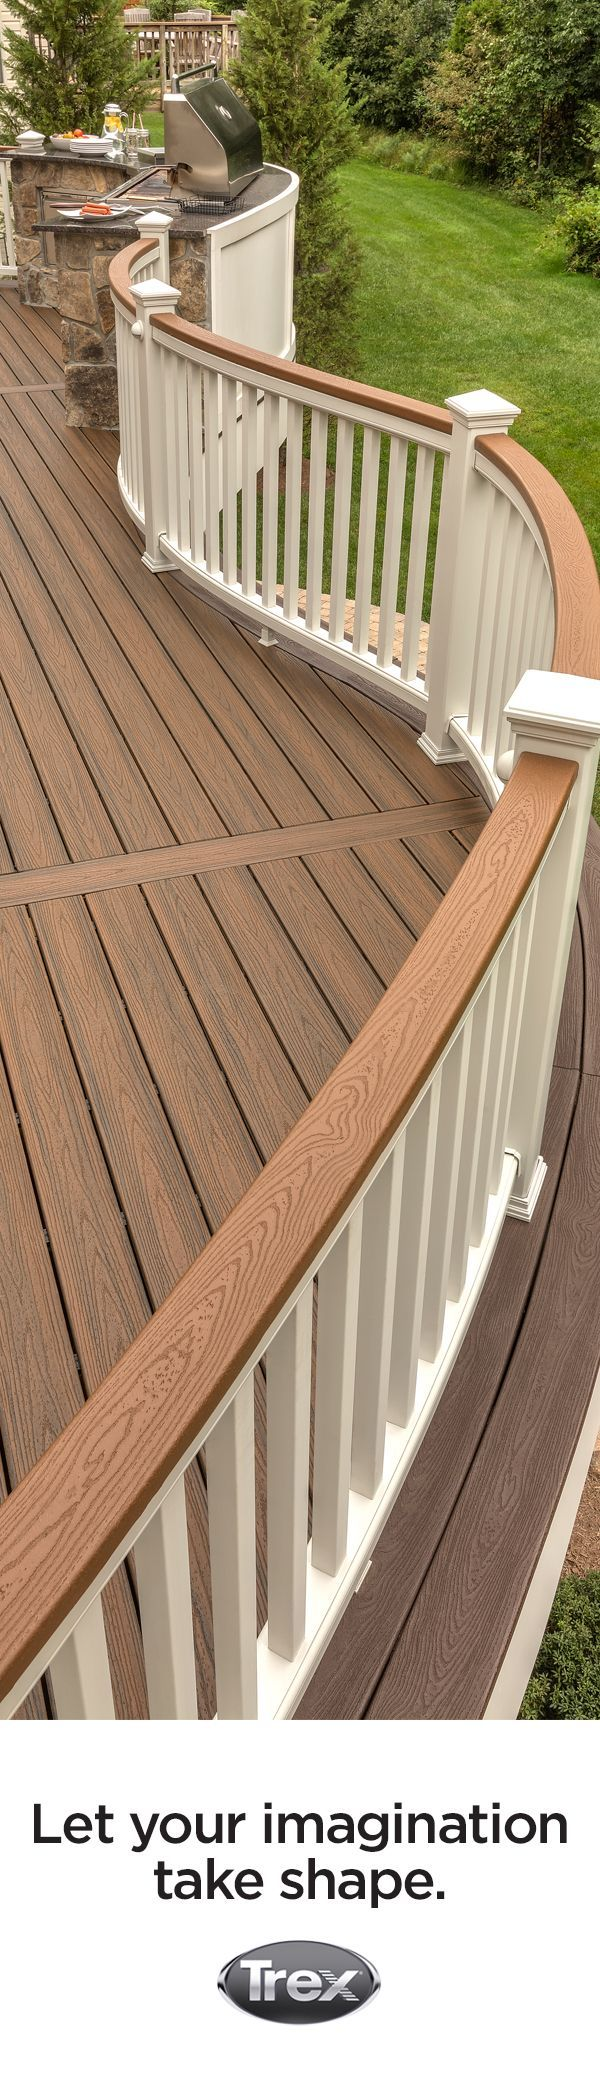 Curves add character and space for entertaining to outdoor living. Trex  #composite decking and